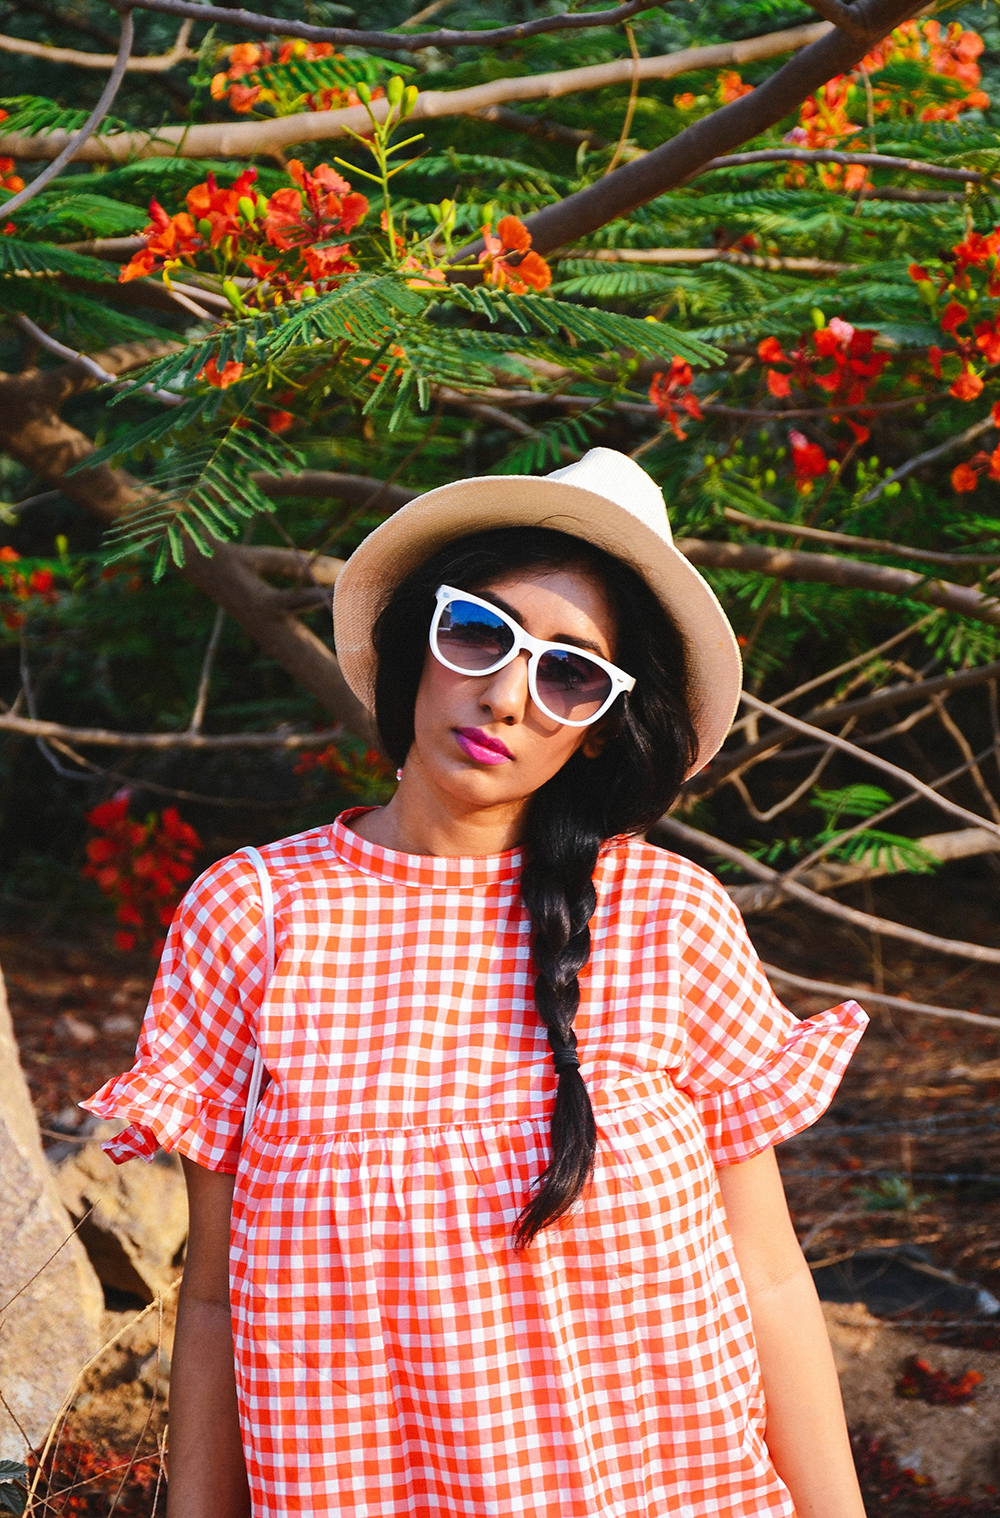 Lookbook ; Gingham ; Orange ; Outfit ; Hat ; White sunglasses ; Summer outfit ; fashion photography ; vintage ; Romwe ; braids ; summer blooms ; woods ; editorial ; strong ; Dark ; summer fashion ; spring ; summer 17 ; Naznin ; Naznin Suhaer ; dusky ; white sling ; indian blogger ; hyderabad fashion bloggers ; hyderabad bloggers ; hyderabad fashion blogger ; I Dress for the Applause ;